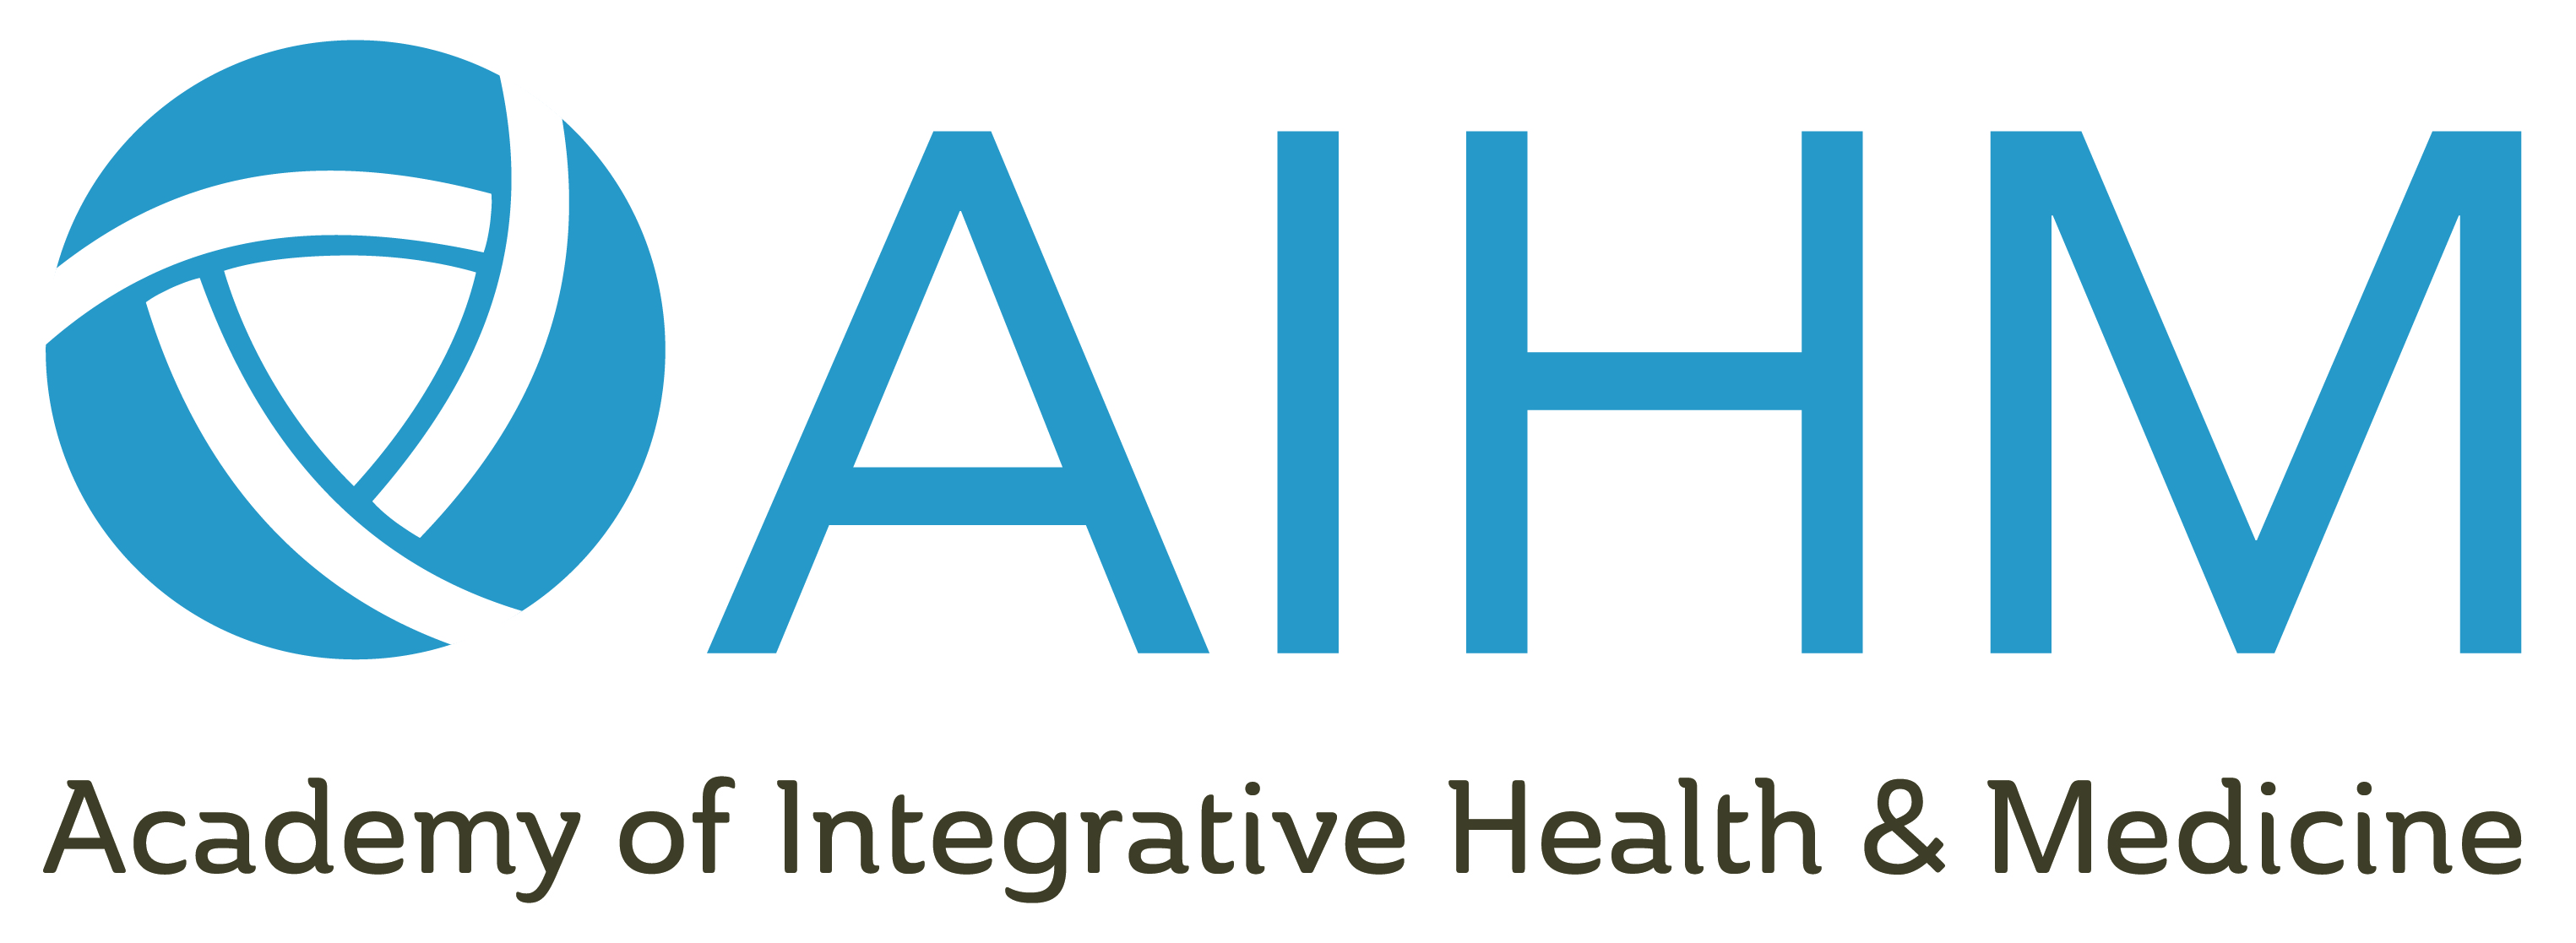 Academy of Integrative Health & Medicine